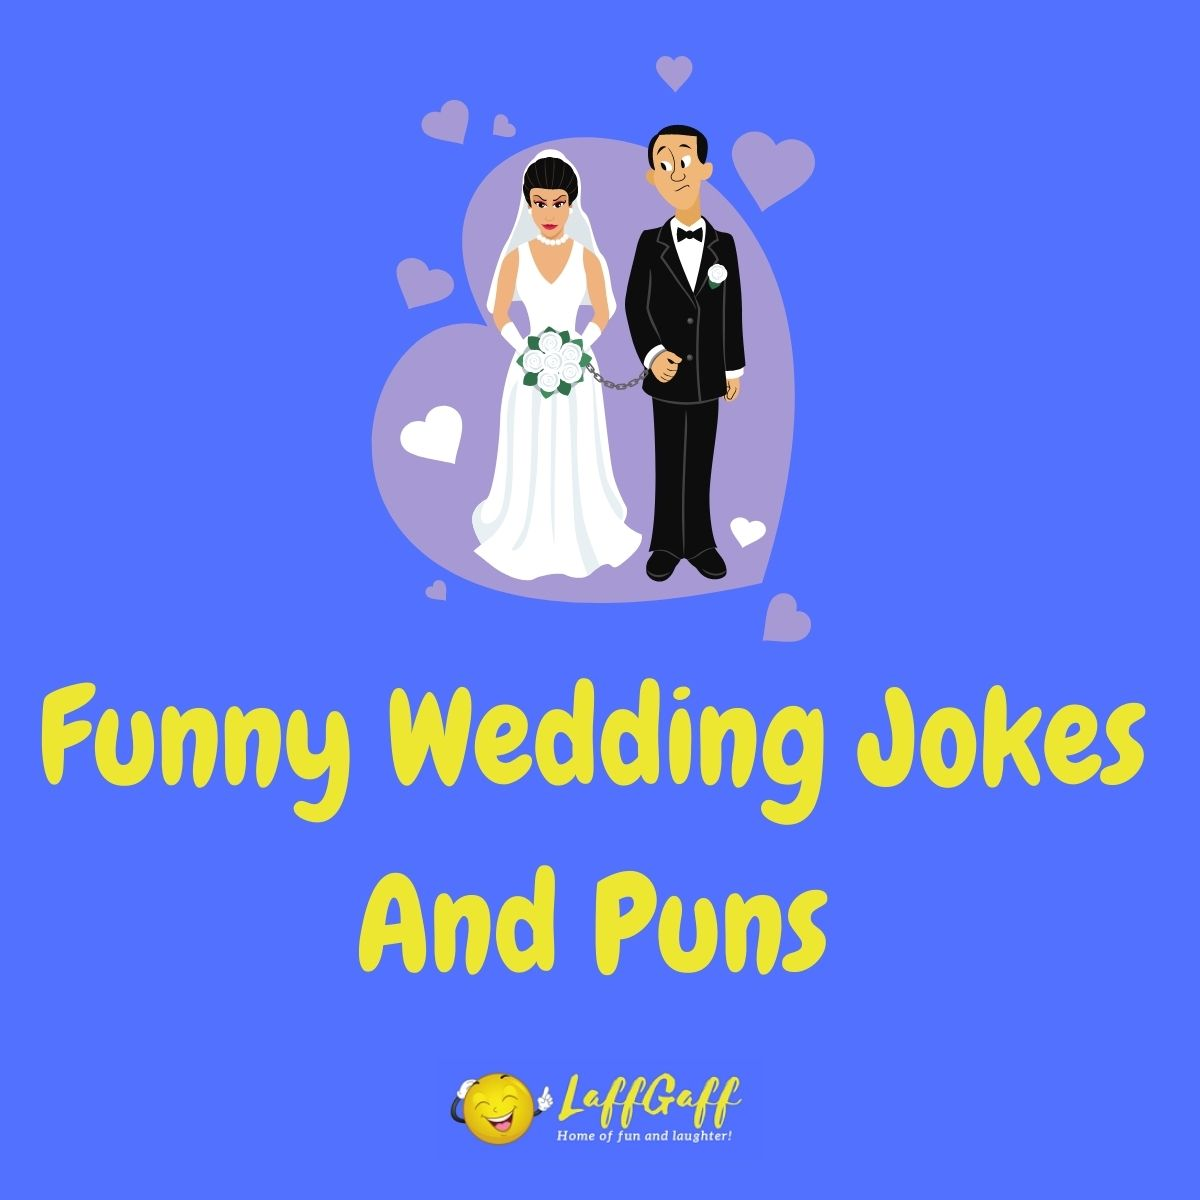 Featured image for a page of funny wedding jokes and puns.